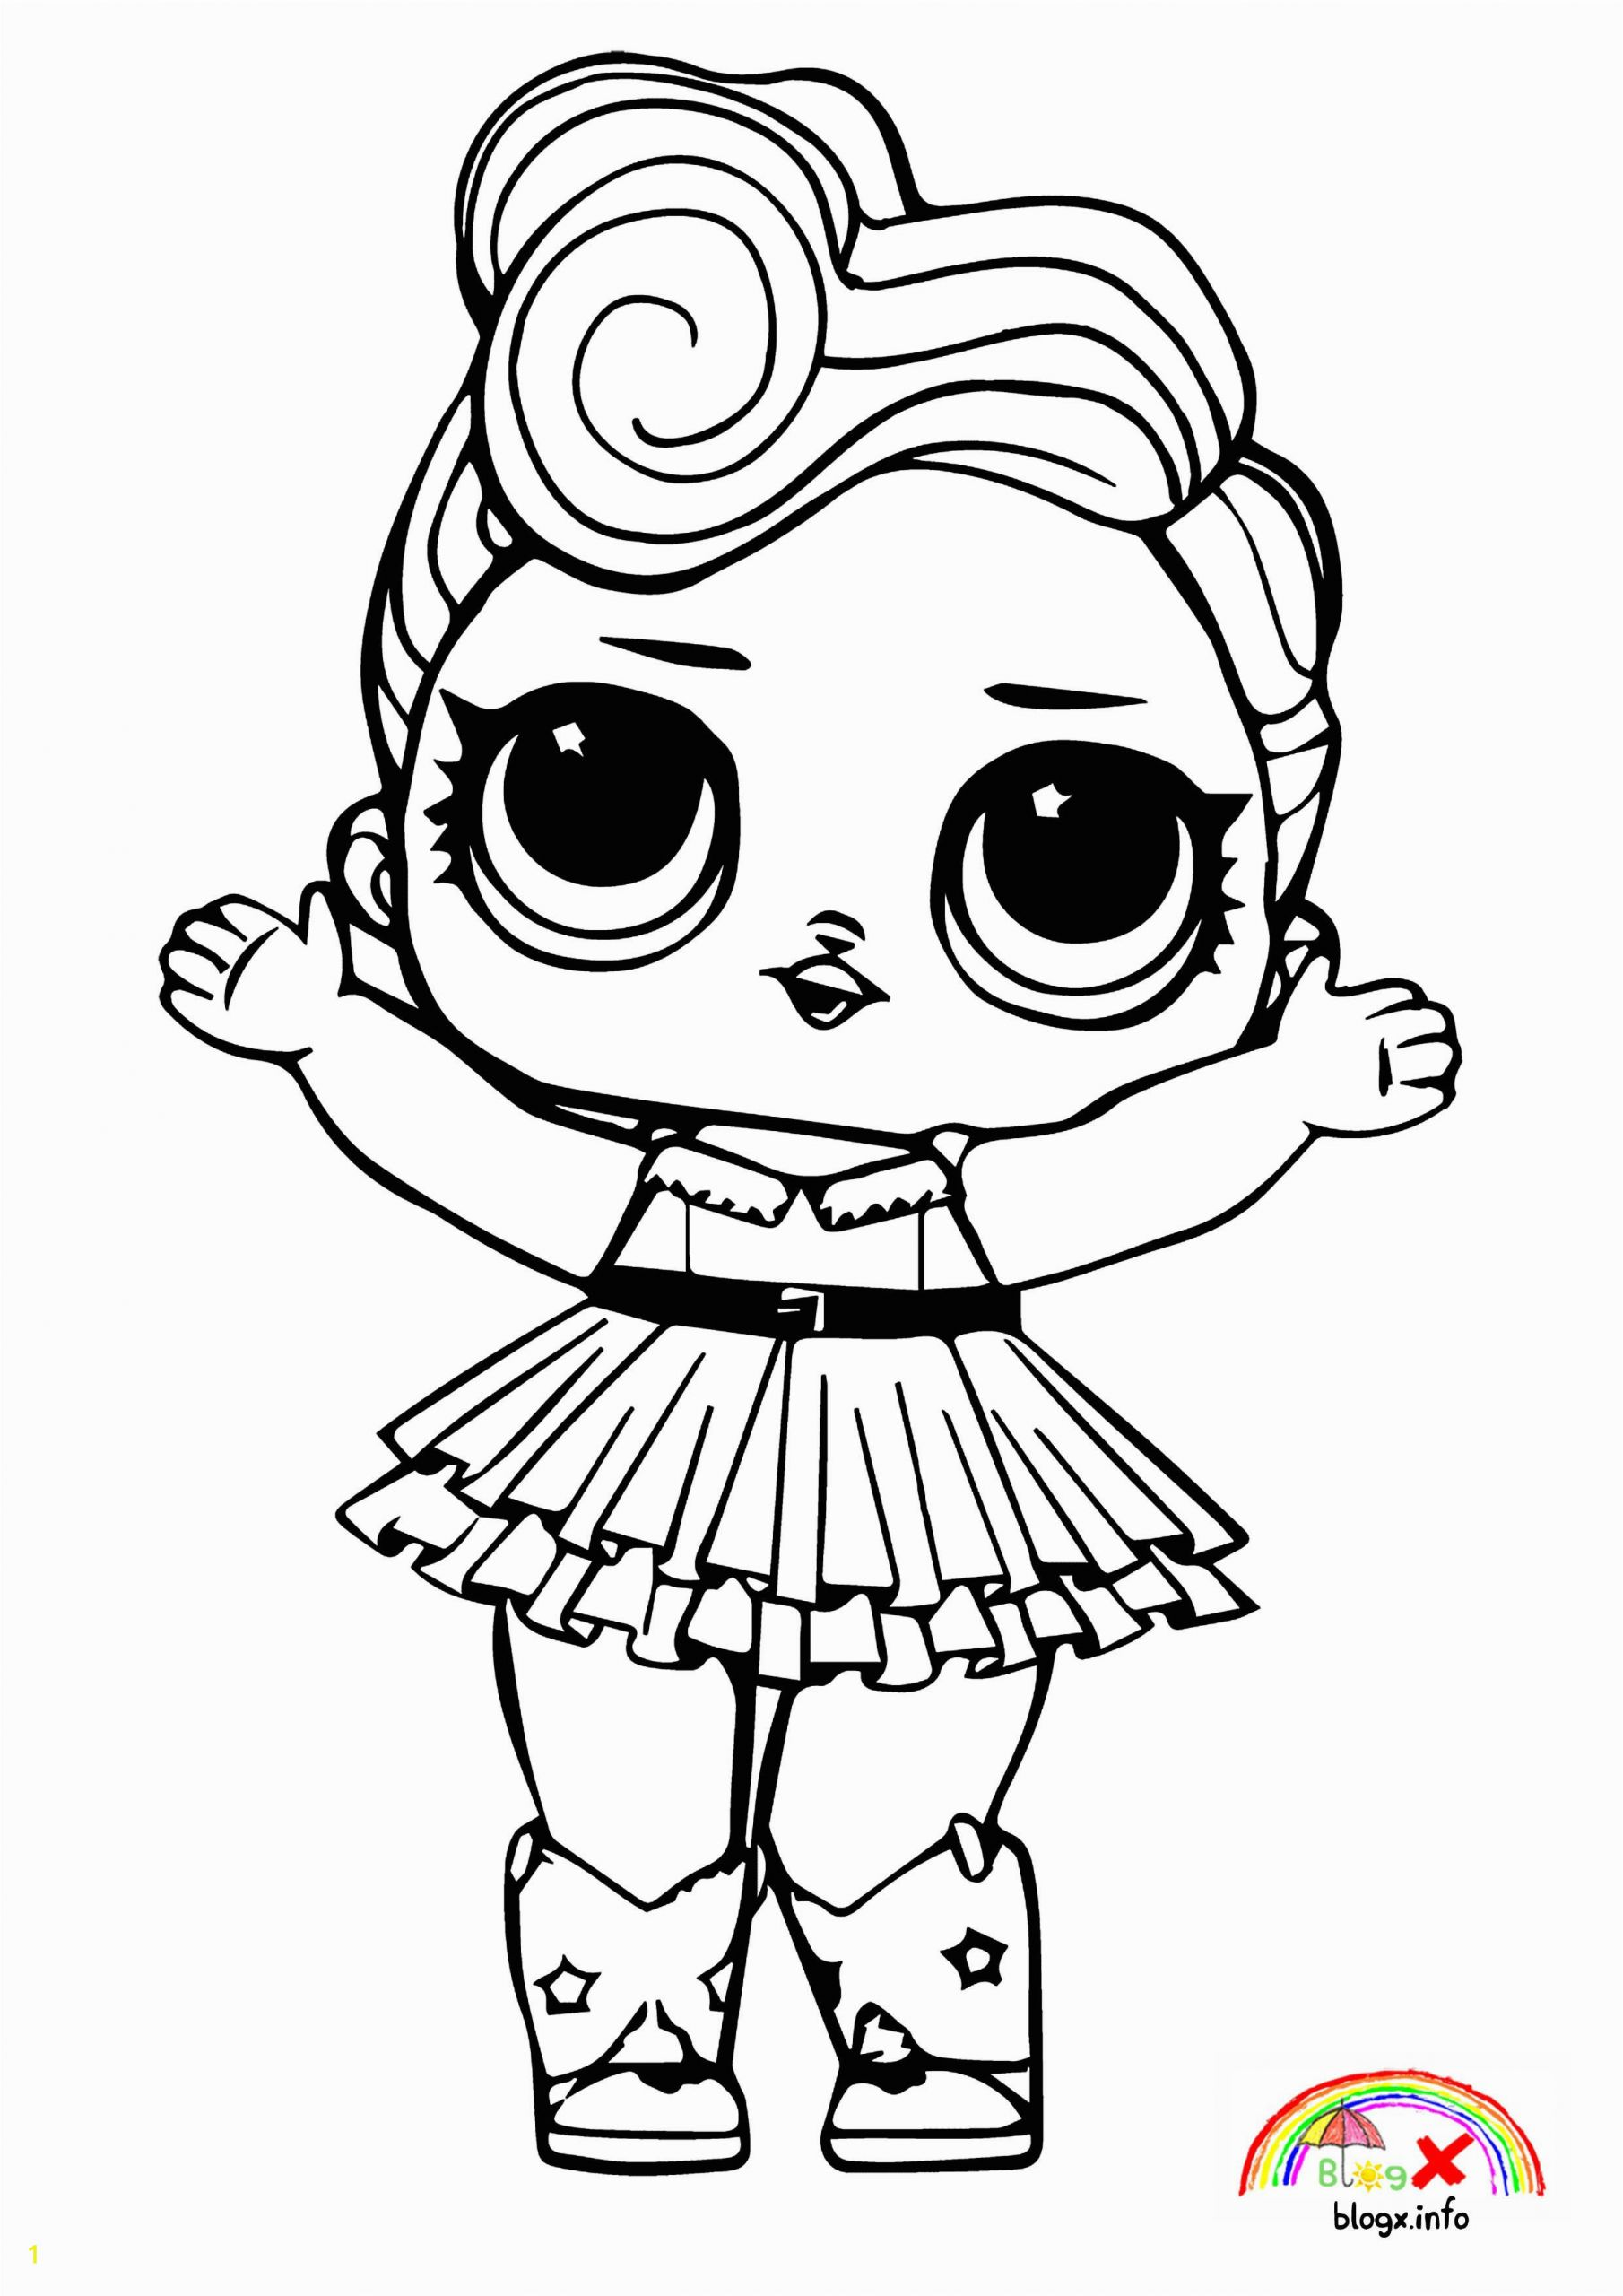 Lol Girl Coloring Pages Lol Surprise Dolls Coloring Book Hd